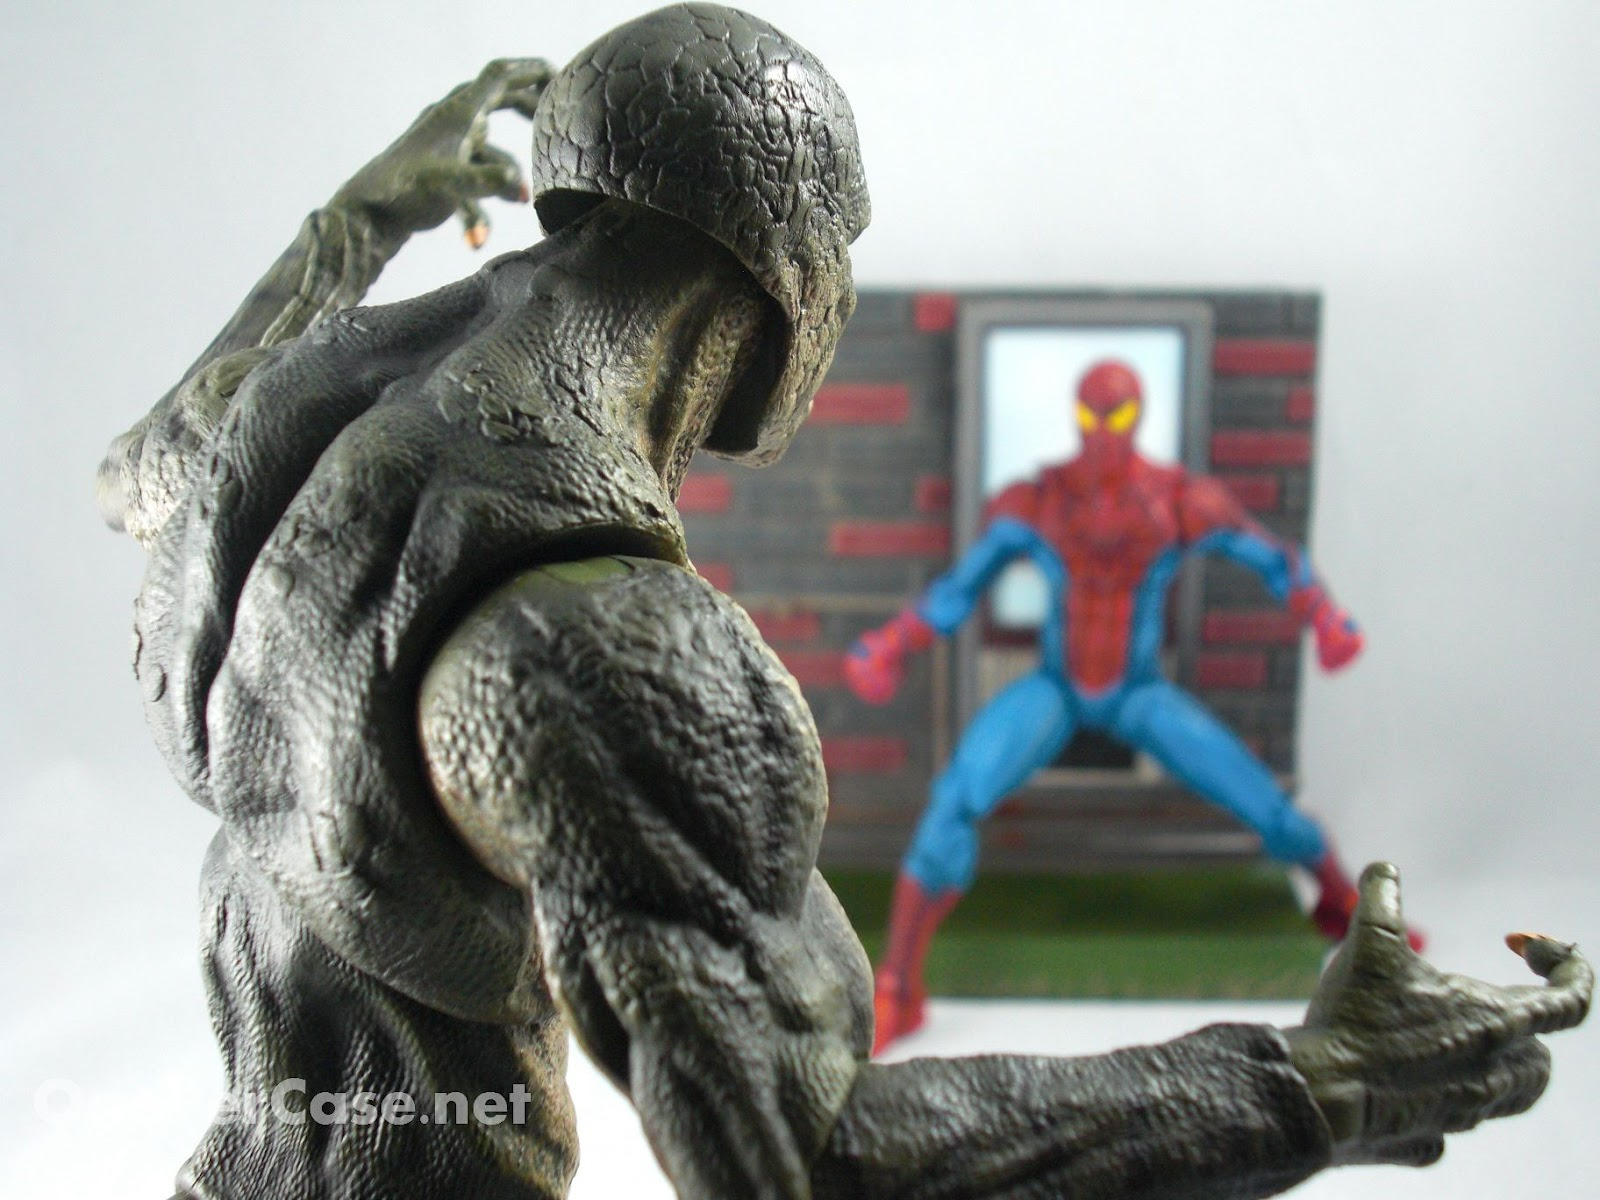 Amazing Wallpaper Marvel Lizard - Marvel+Select+Diamond+Toys+DST+Amazing+Spider-Man+Lizard+Action+Figure+One+Per+Case+2012+(16)  Perfect Image Reference_84851.JPG